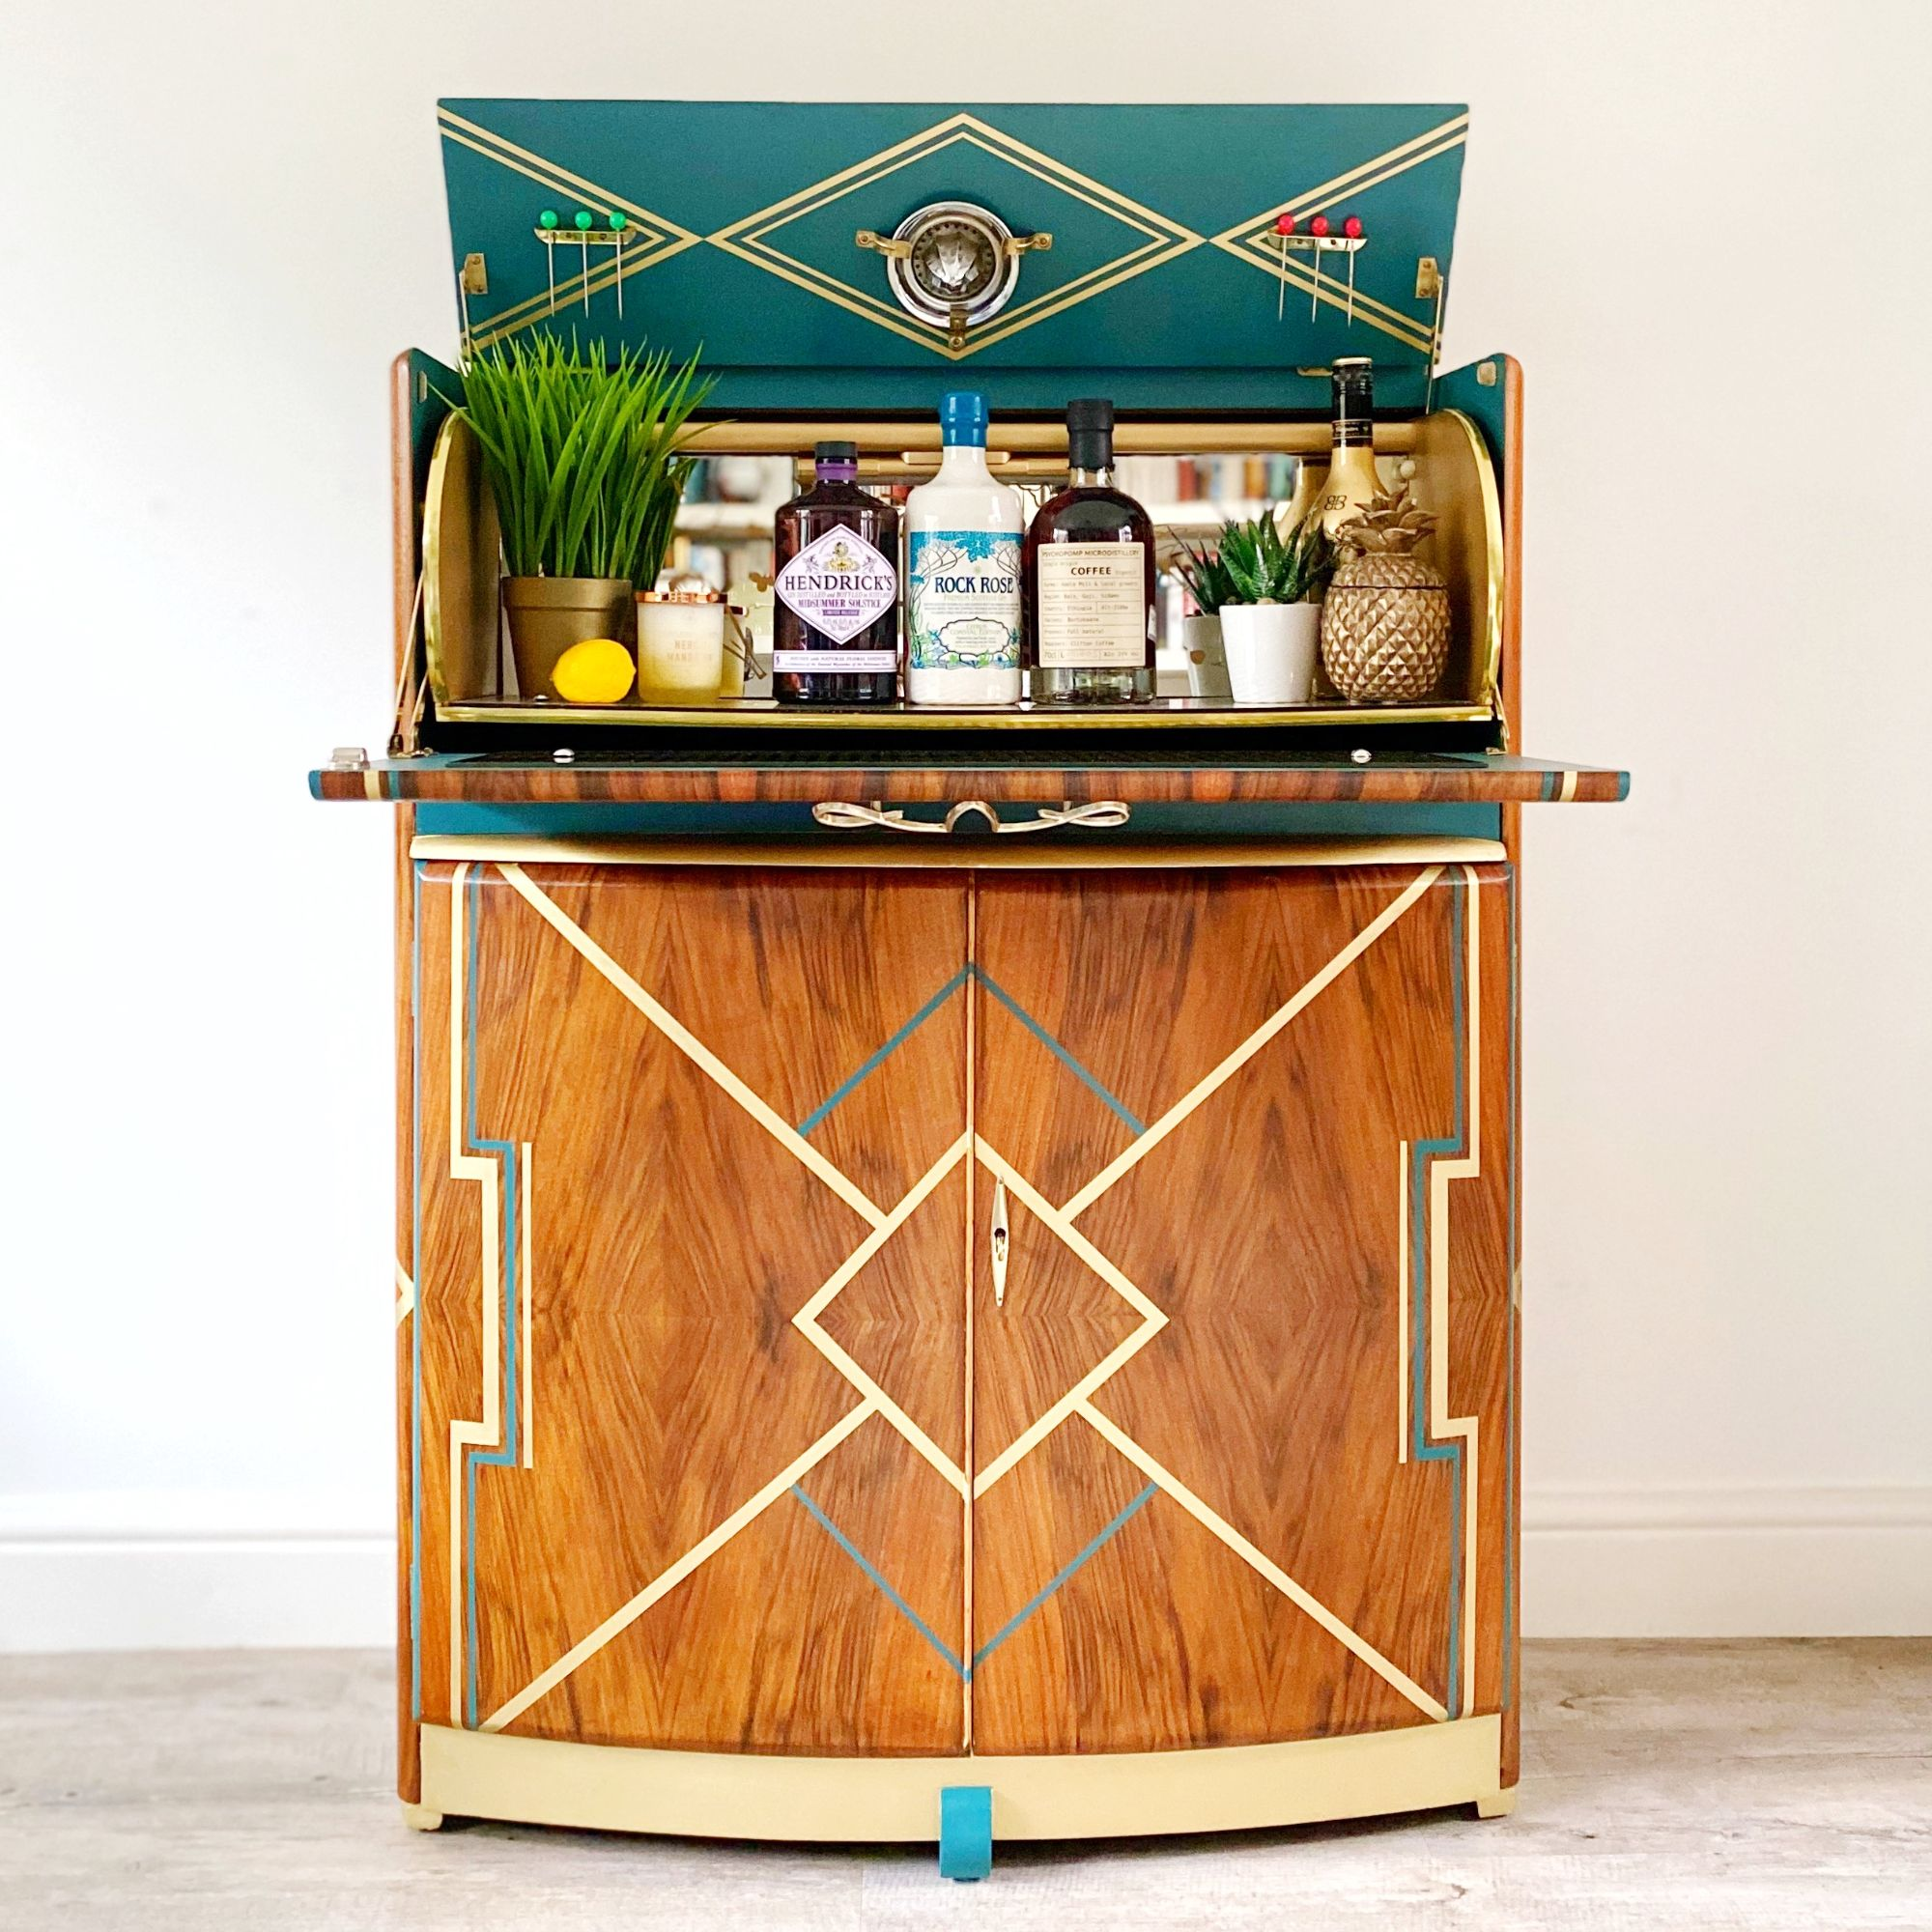 Large Art Deco Drinks cabinet in Teal & Gold.jpg